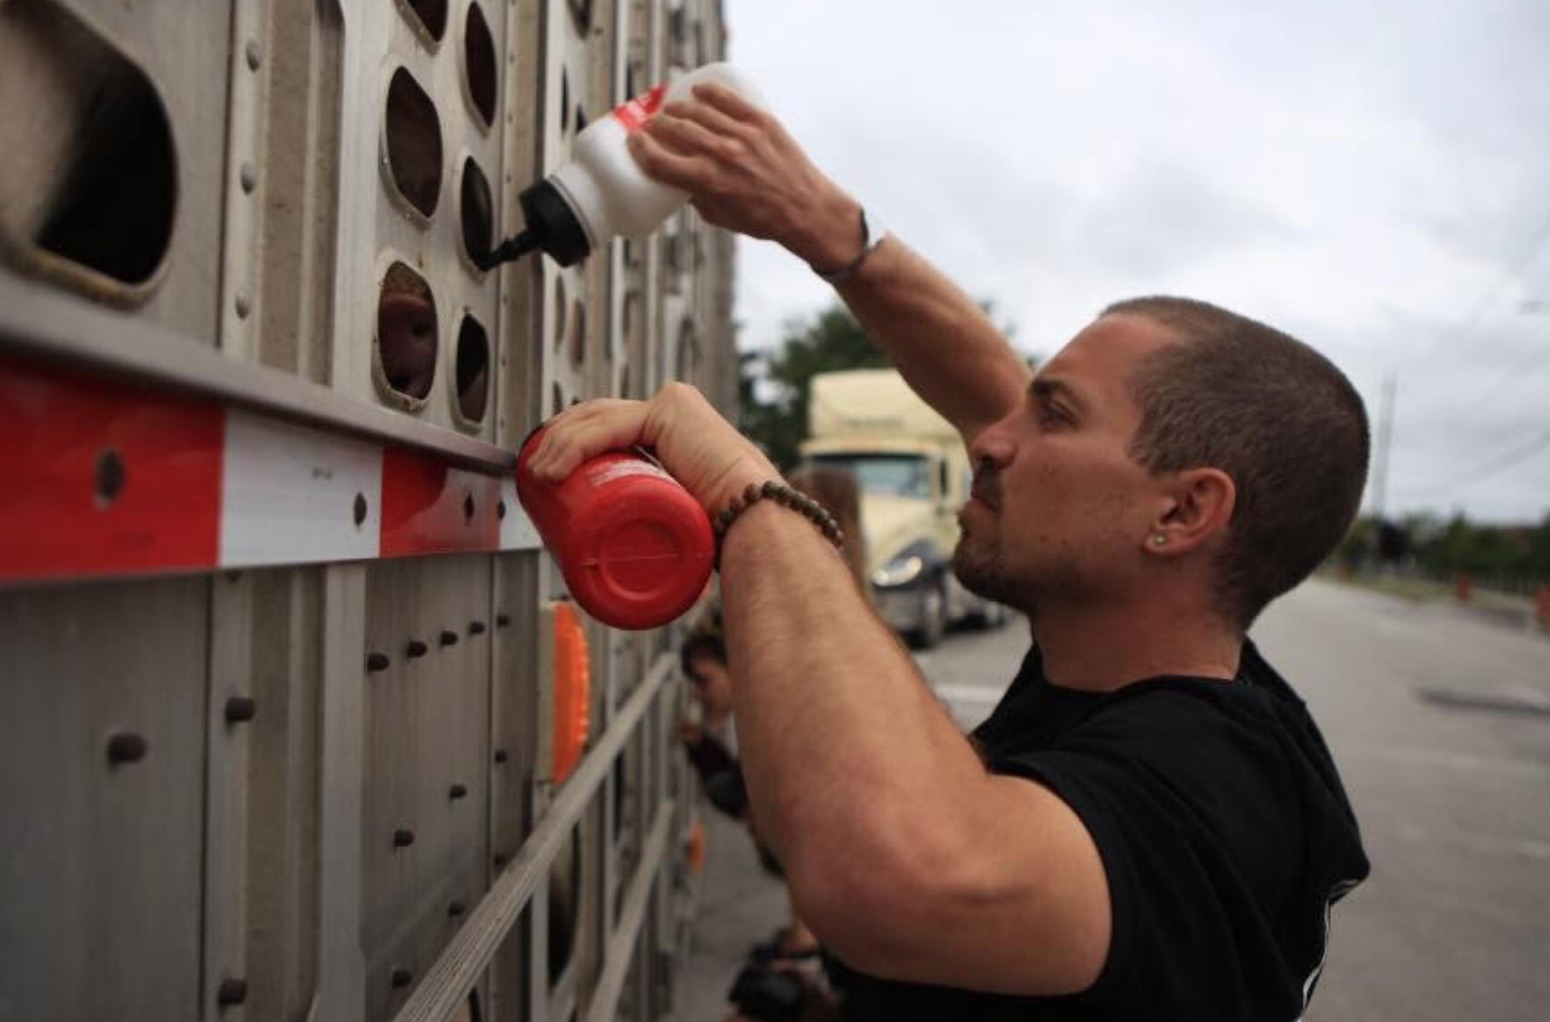 Joshua Entis gives water to pigs